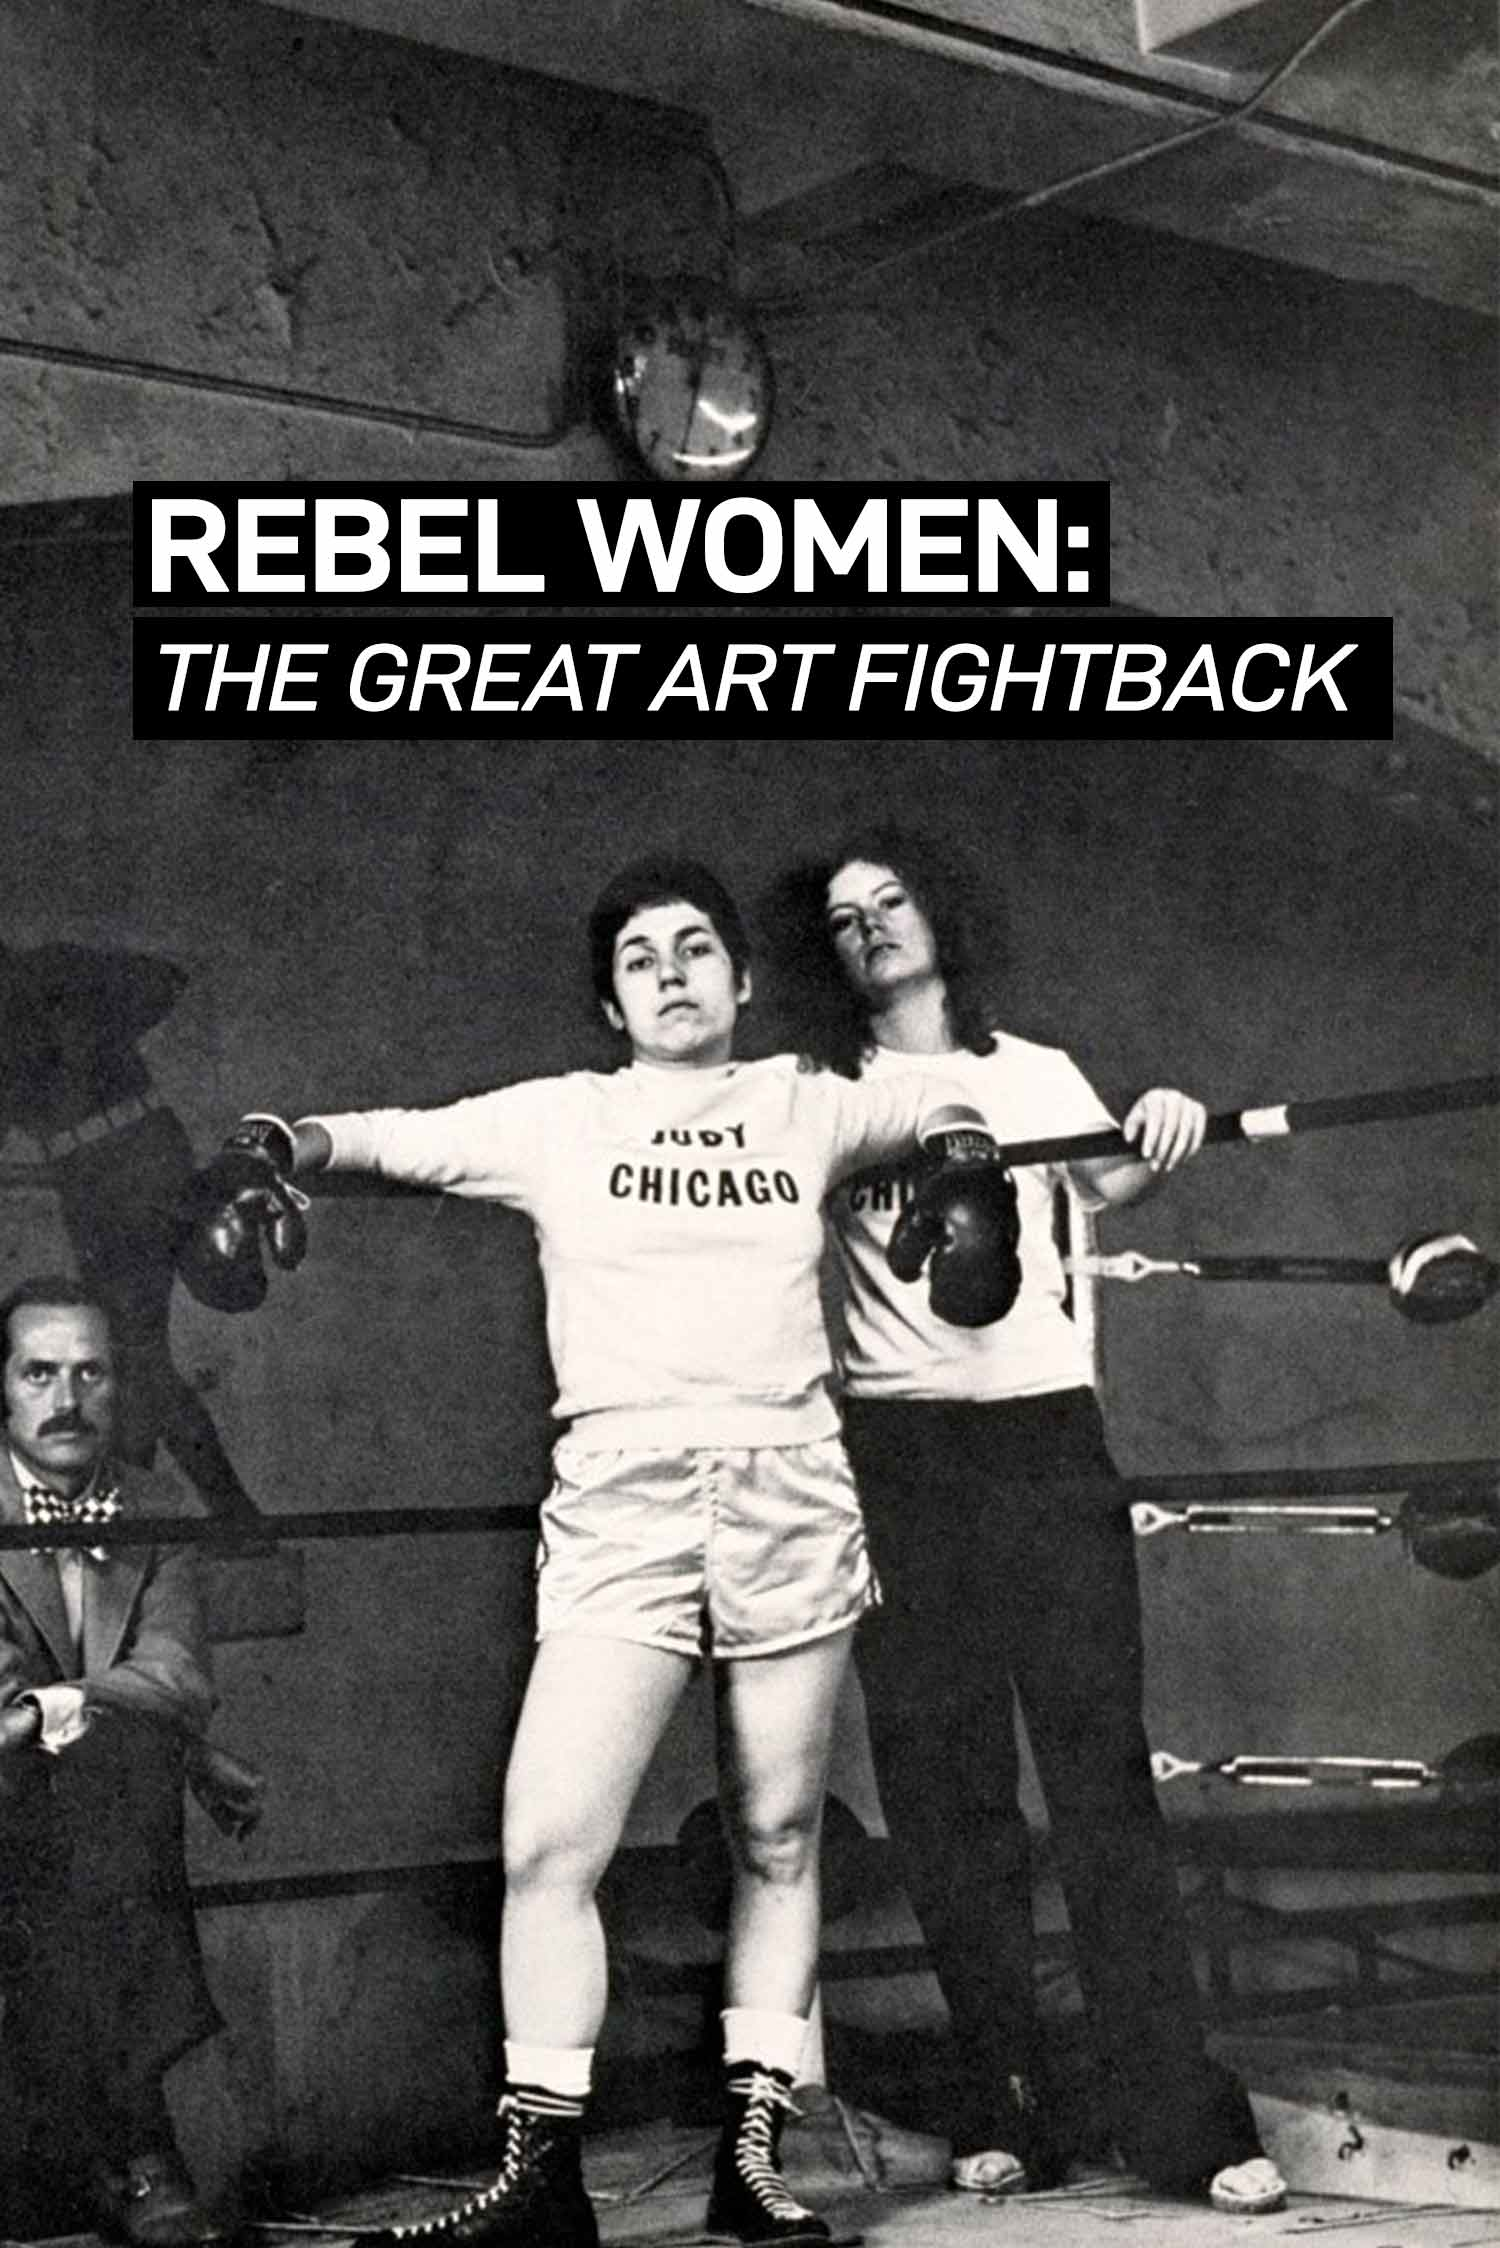 Rebel Women: The Great Art Fightback